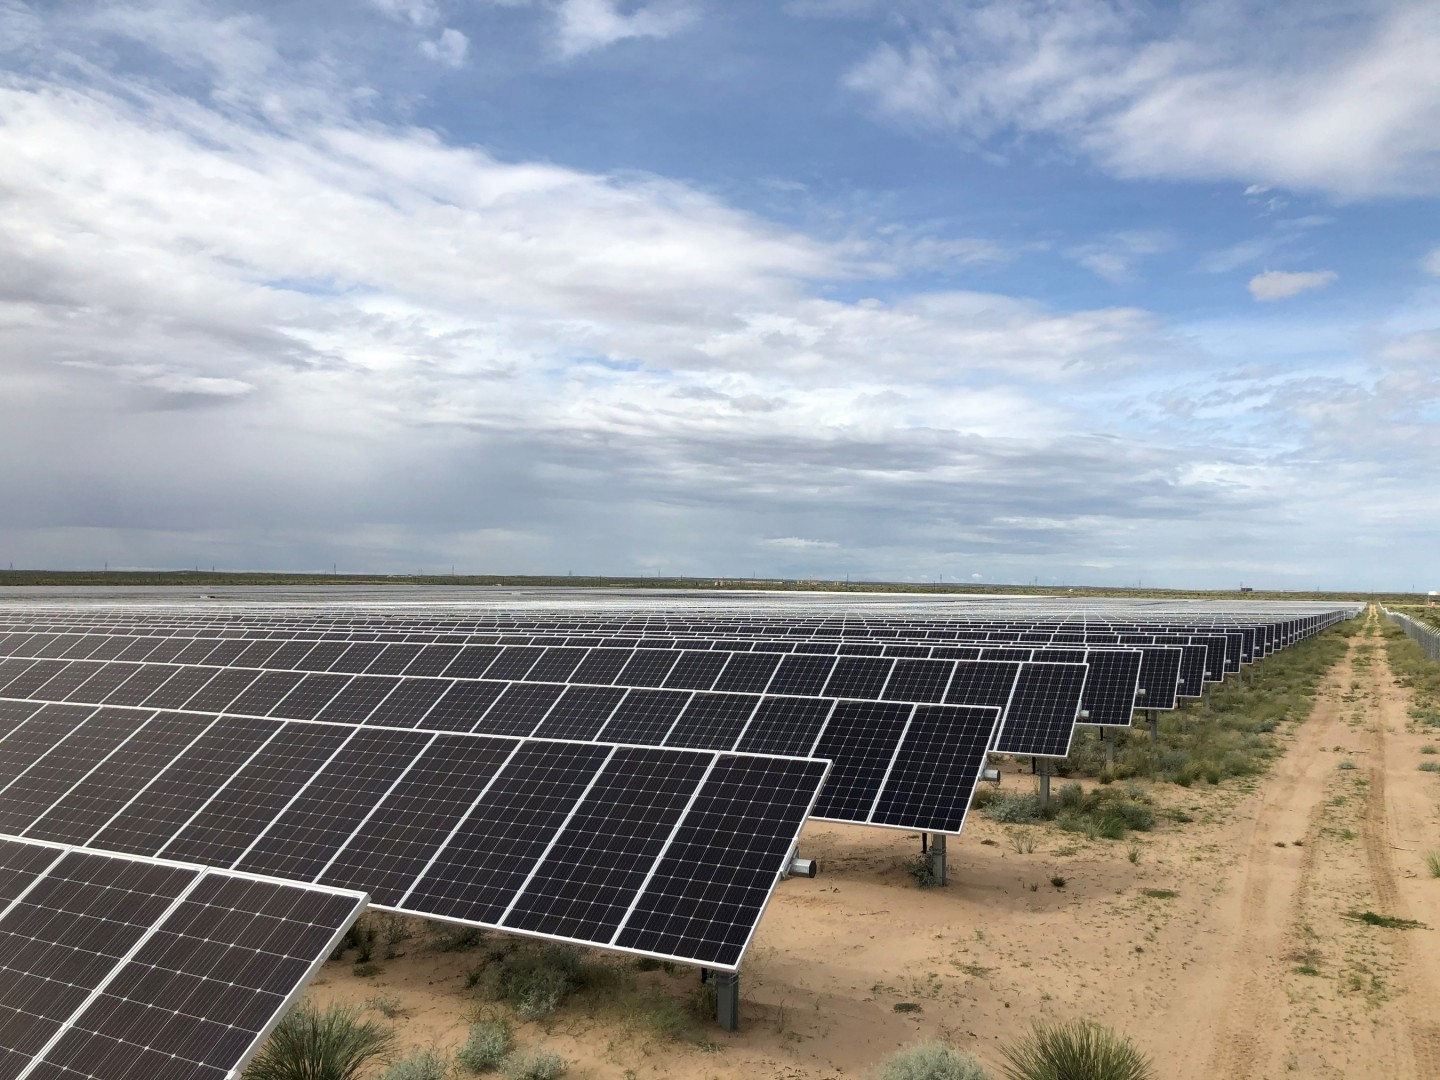 The installation is comprised of nearly 350,000 solar panels on a surface of 550 football pitches. West of the Pecos stands RWE's first solar project in Texas and is the latest expansion of a growing footprint within the US. Image: RWE